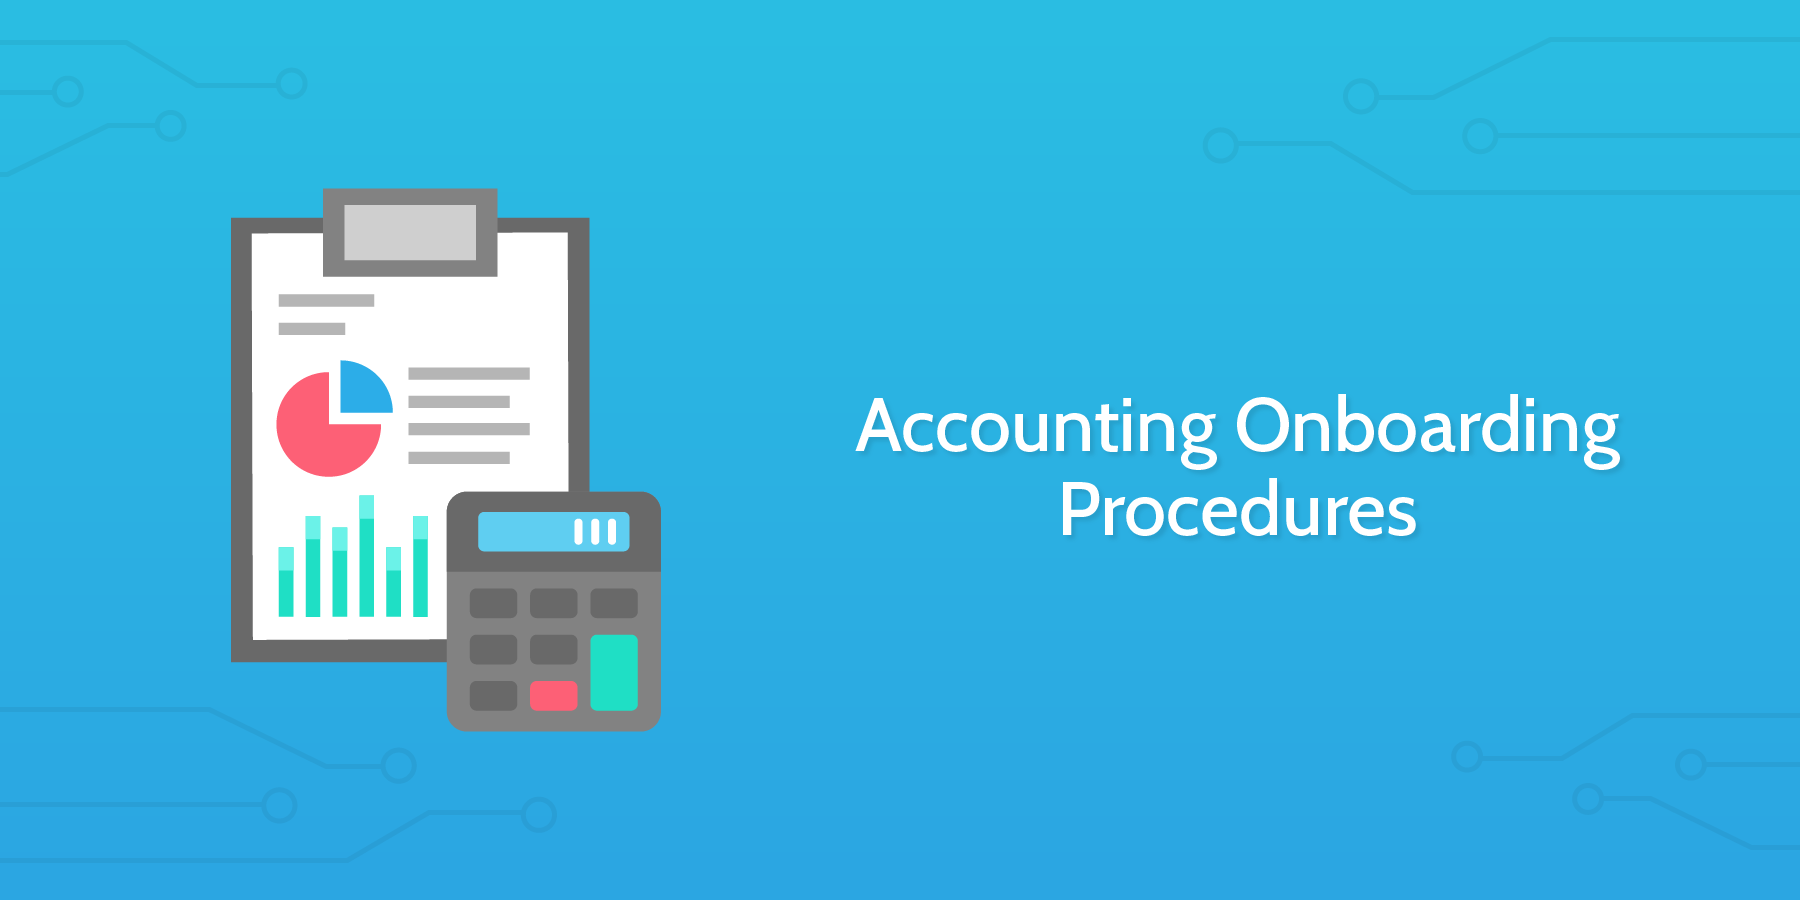 New Hire Checklist - Accounting Onboarding Procedures